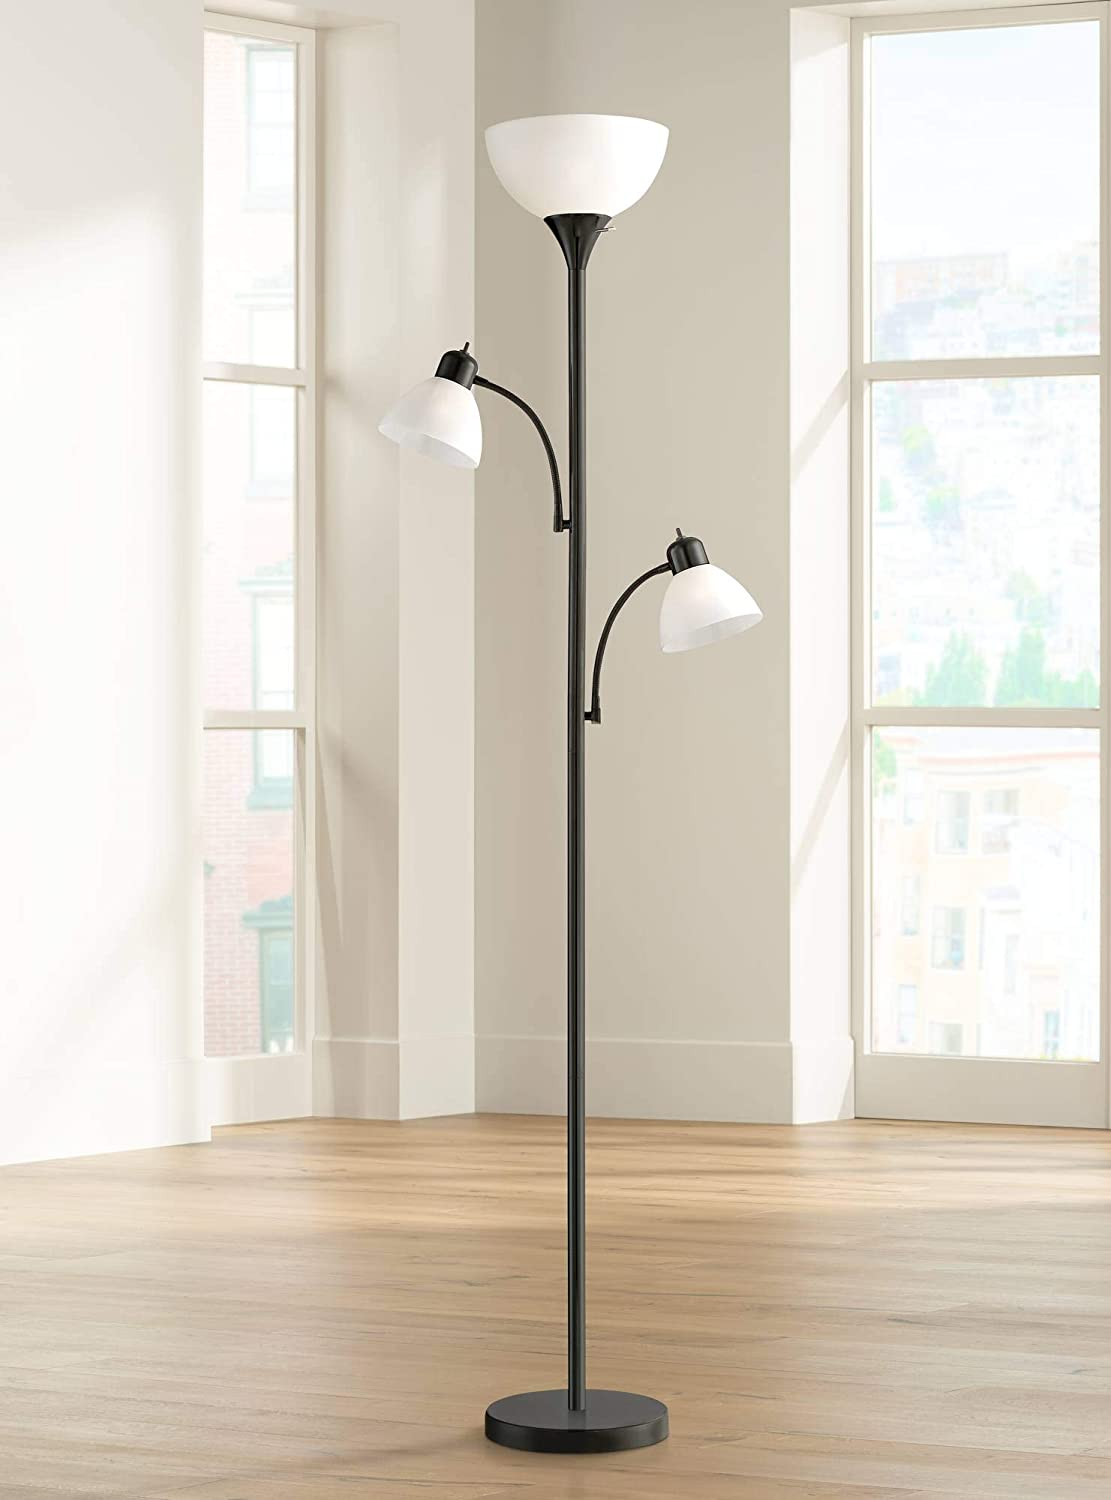 Bingham Modern Torchiere Floor Lamp 3-Light Tree Black Metal White Shades for Living Room Reading Bedroom Office Uplight – 360 Lighting